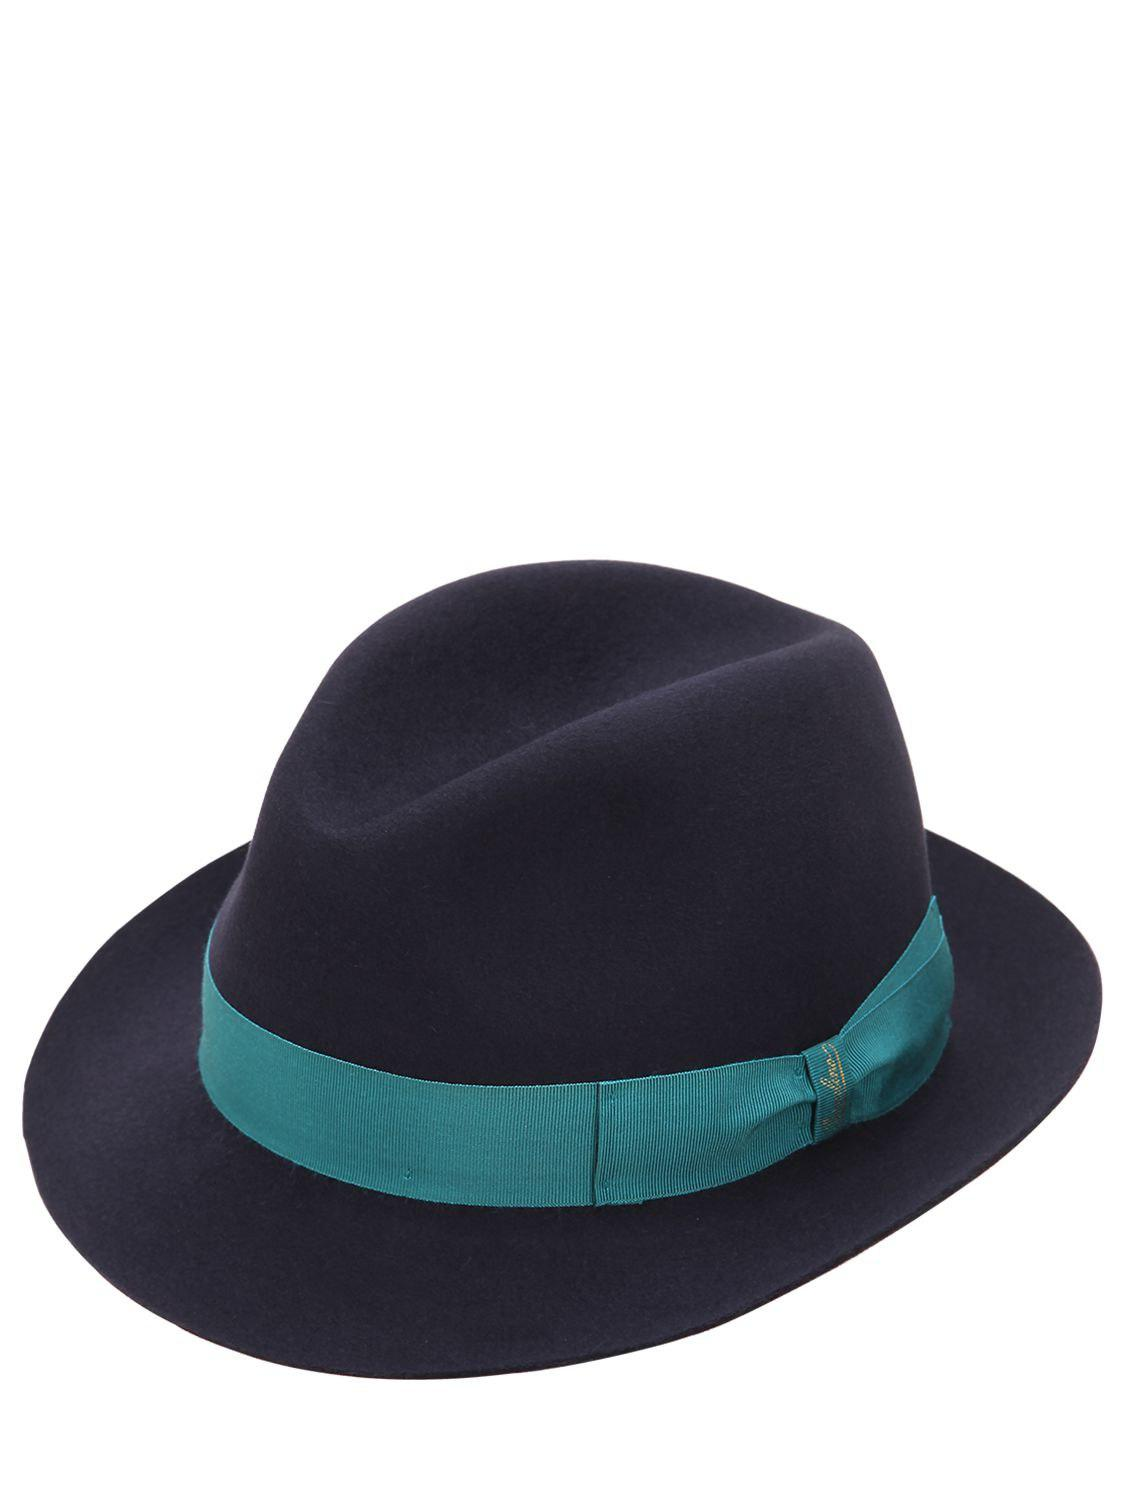 506911a96bd Borsalino Trilby Medium Brim Fur Felt Hat in Blue for Men - Lyst